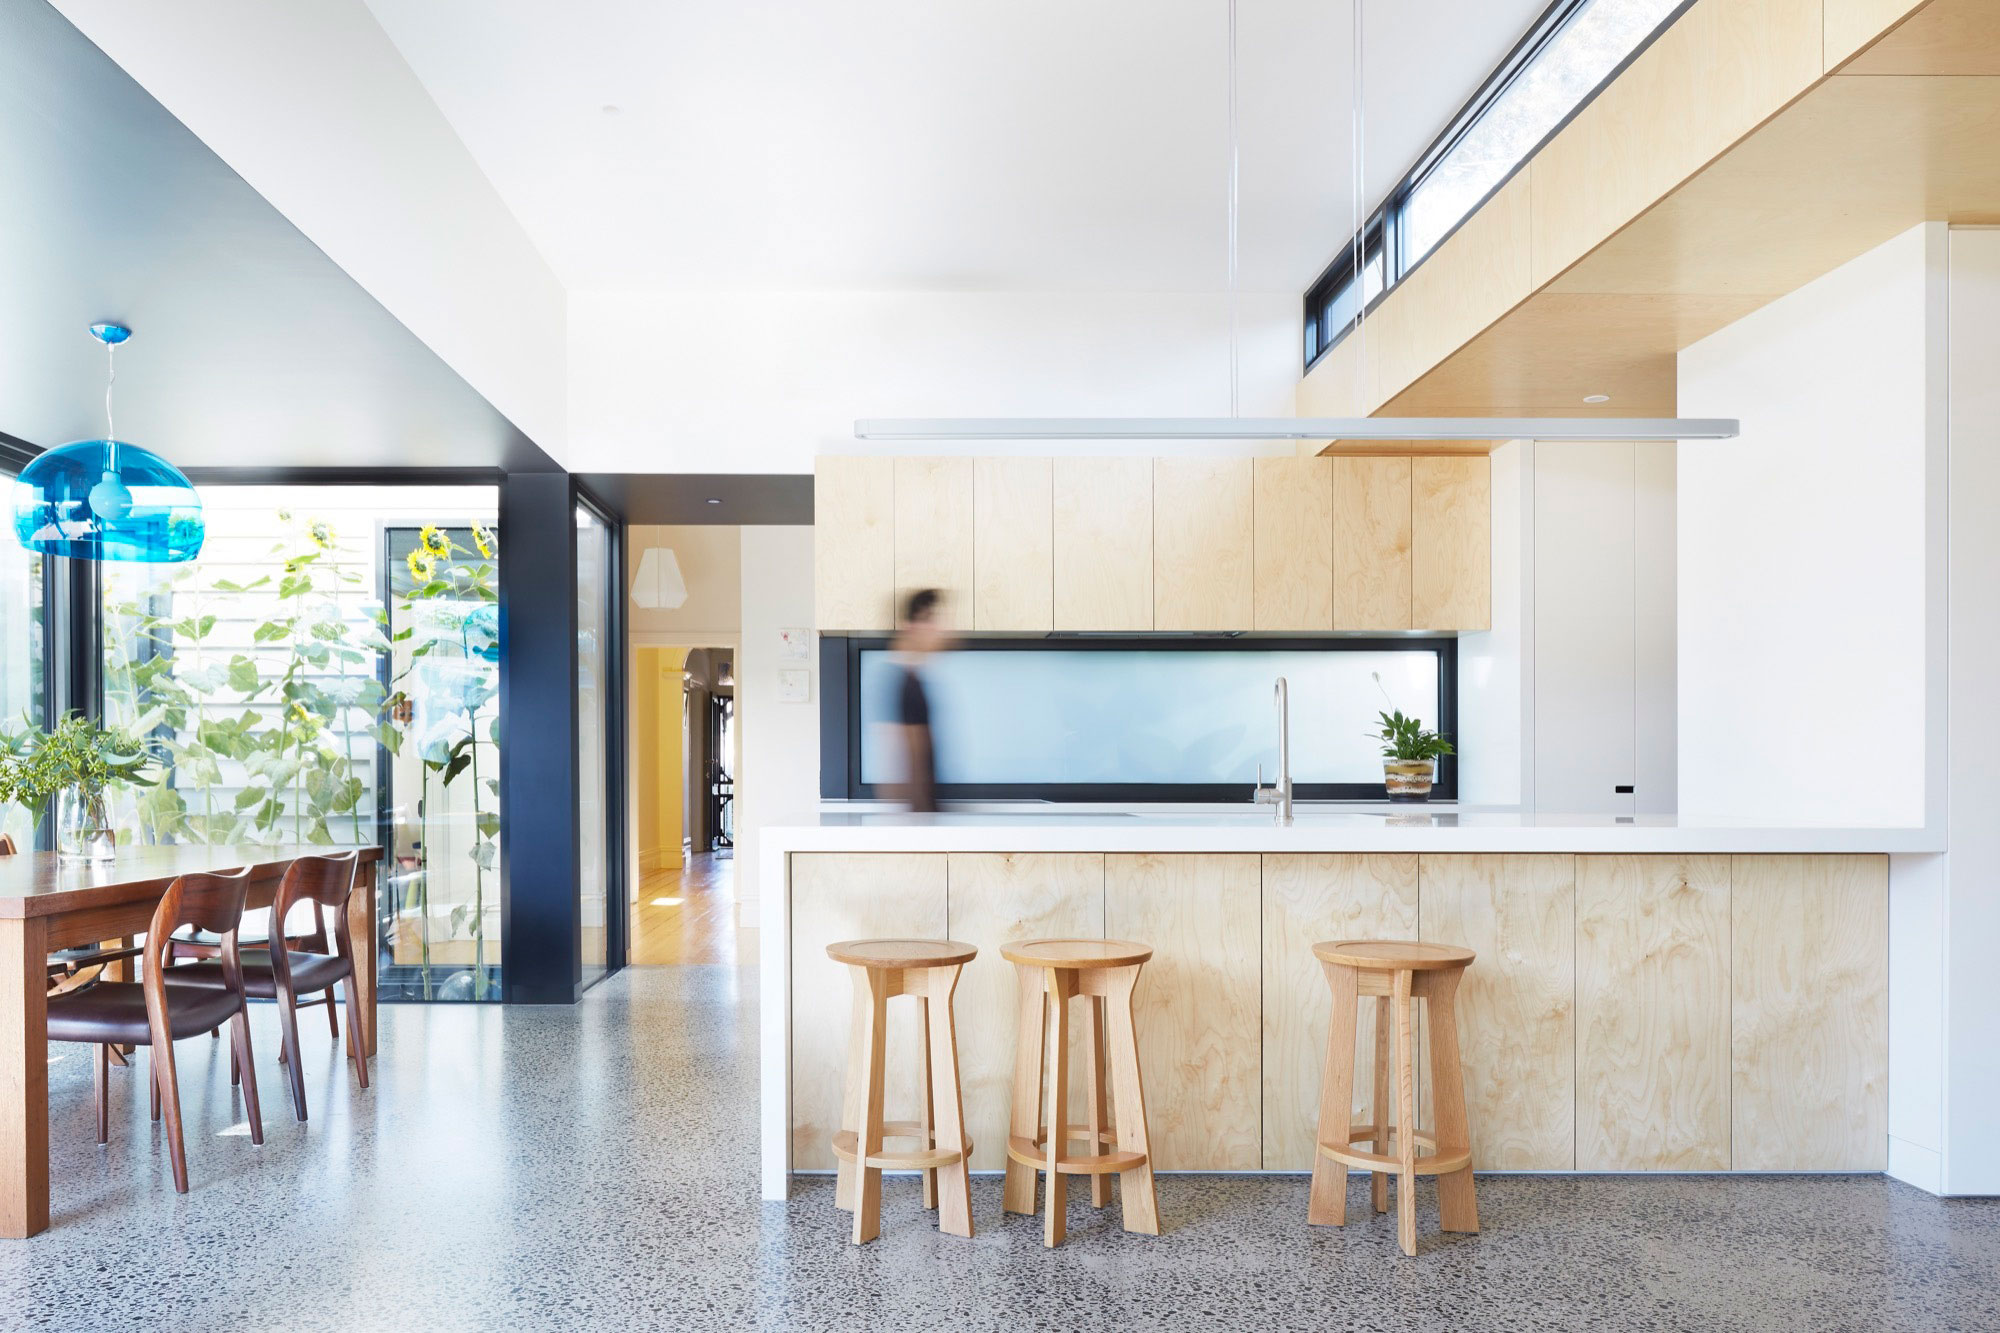 Nic Owen Architects Extend a Home for a Family of Five